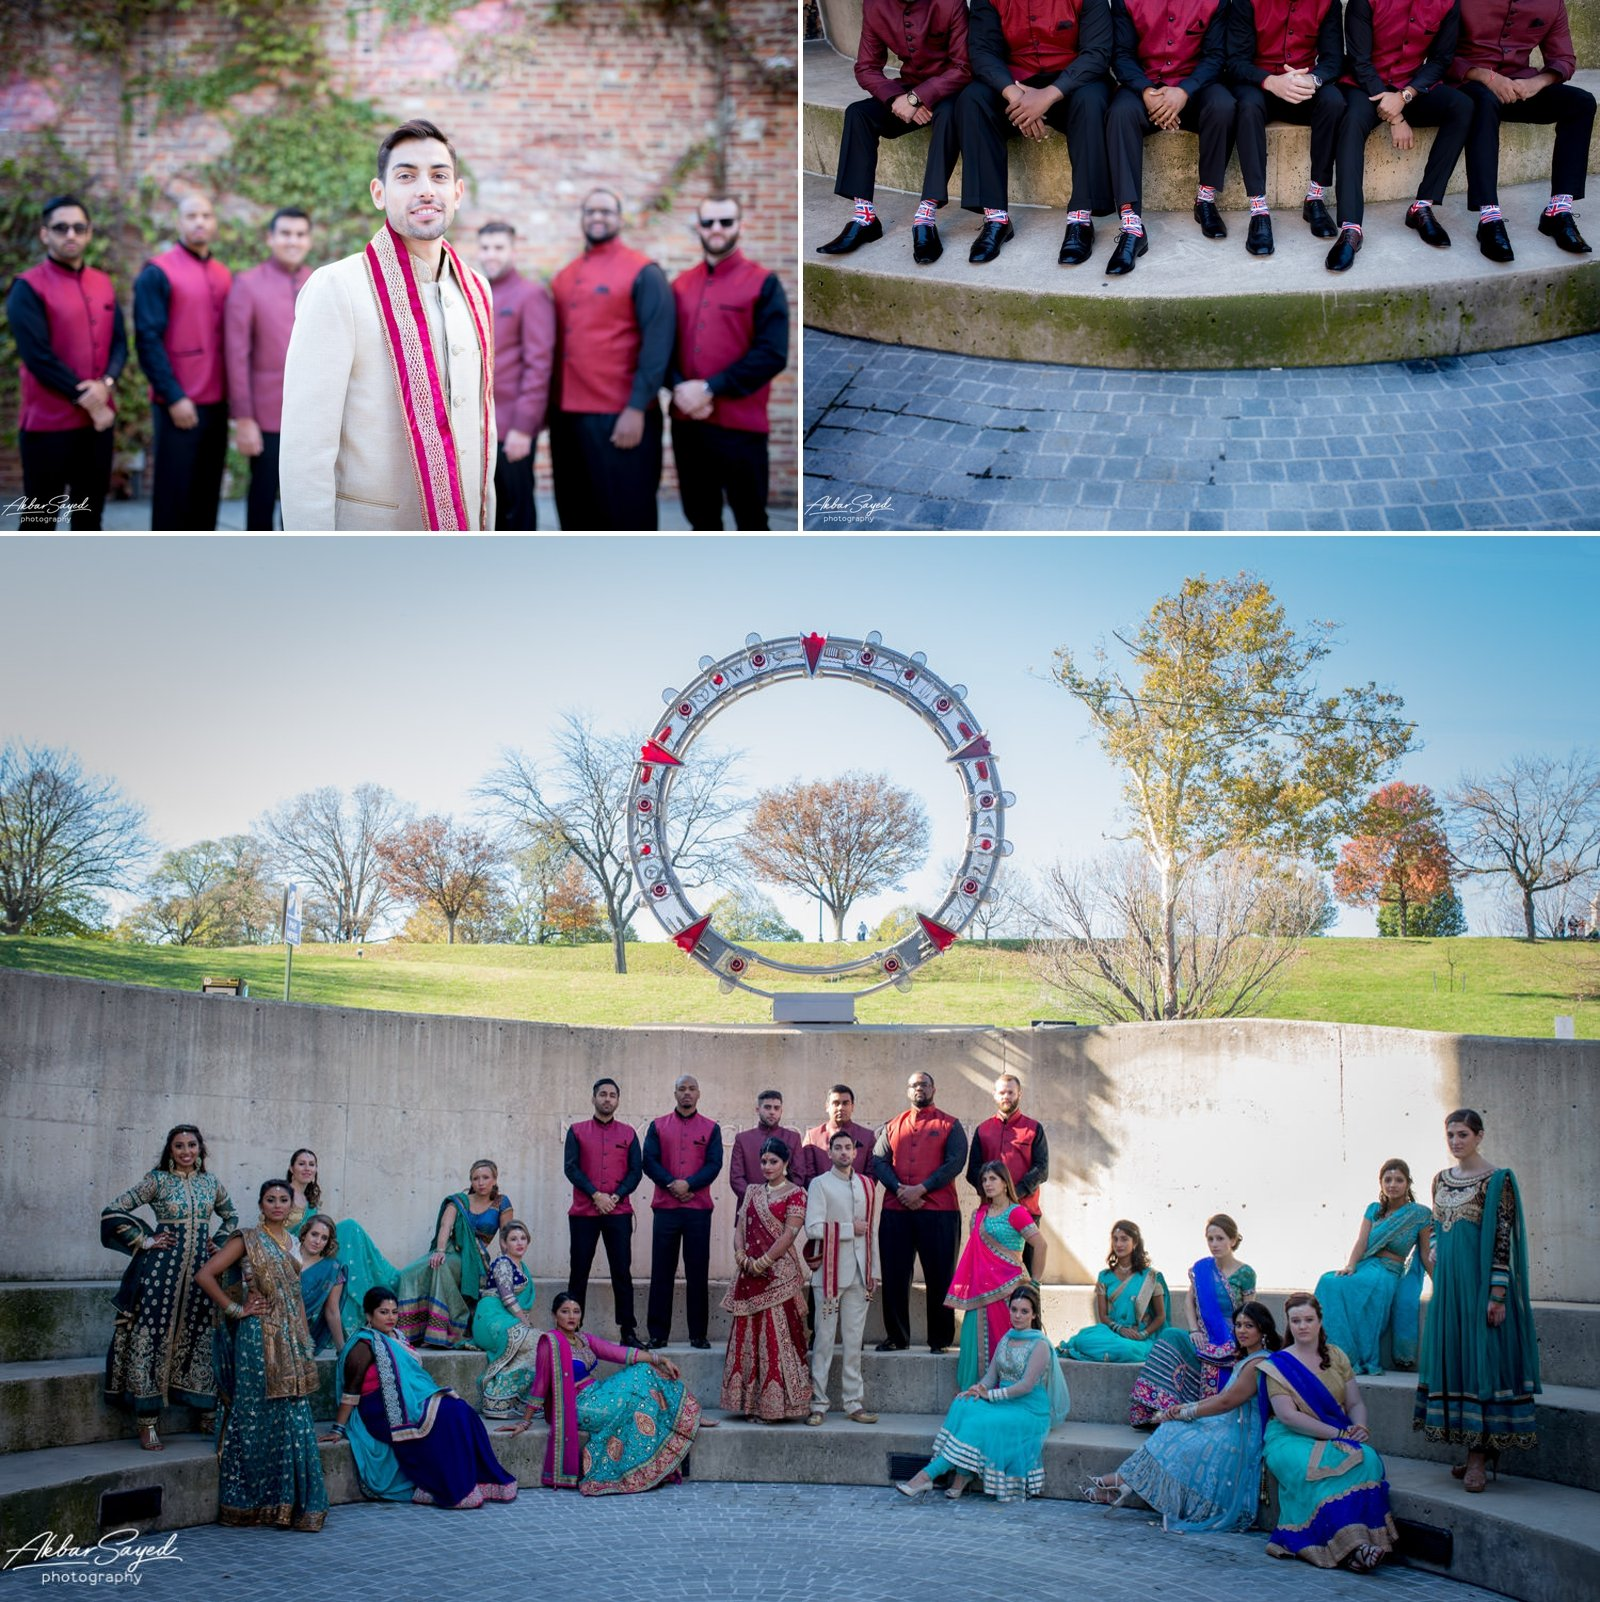 A photo collage of a Indian Bride and Iranian groom and bridal party at the American Visionary Art Museum in Baltimore, Maryland.